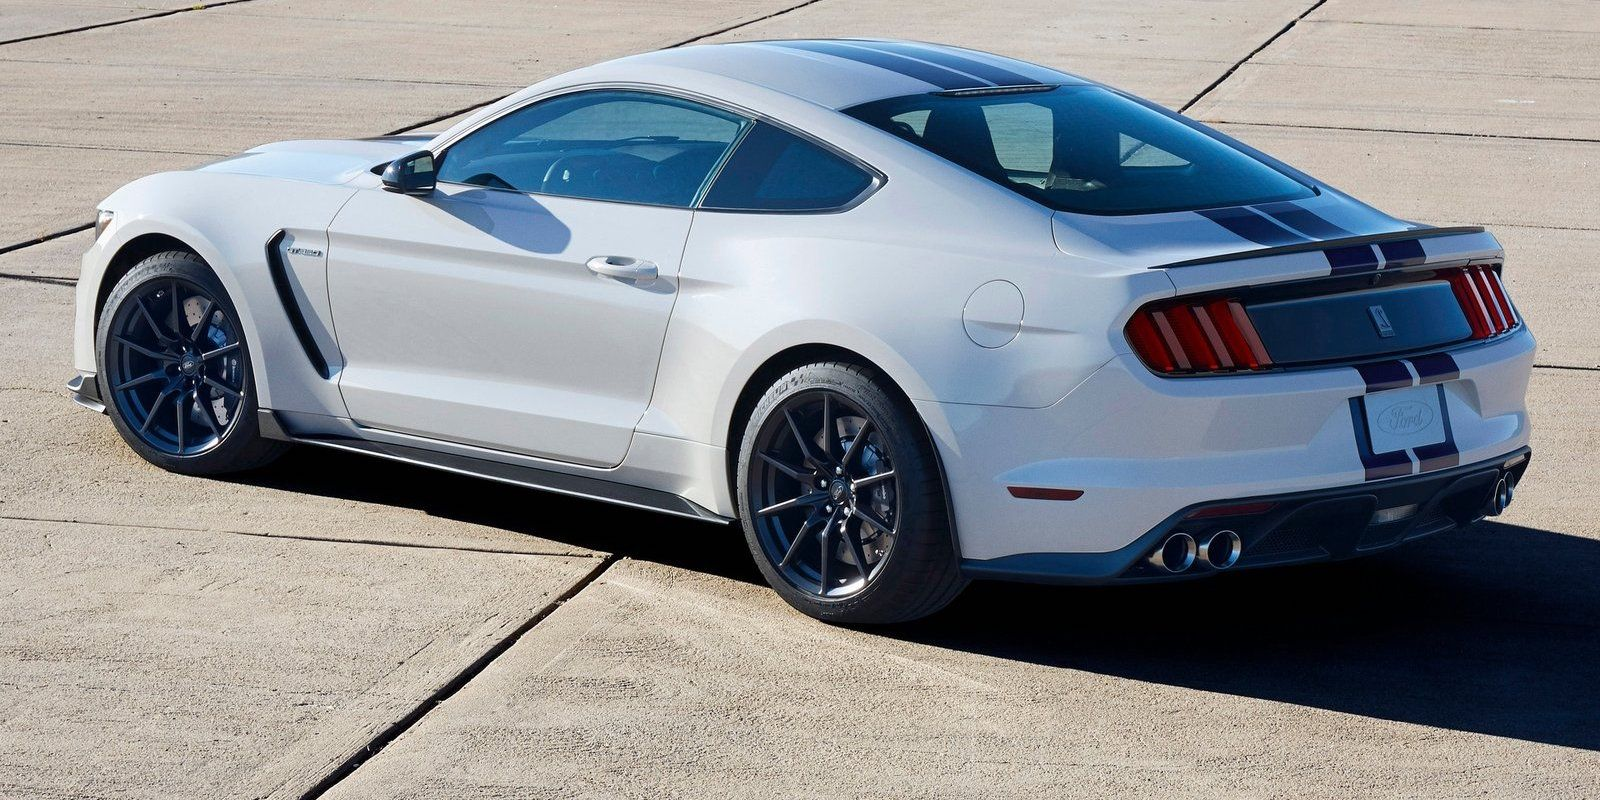 The brilliant new Shelby GT350 is arguably the performance bargain of the century. It can embarrass thoroughbread sports cars that cost way more. Even a loaded GT350R at $65,195 is reasonable.    Just avoid dealer markups on early production examples.